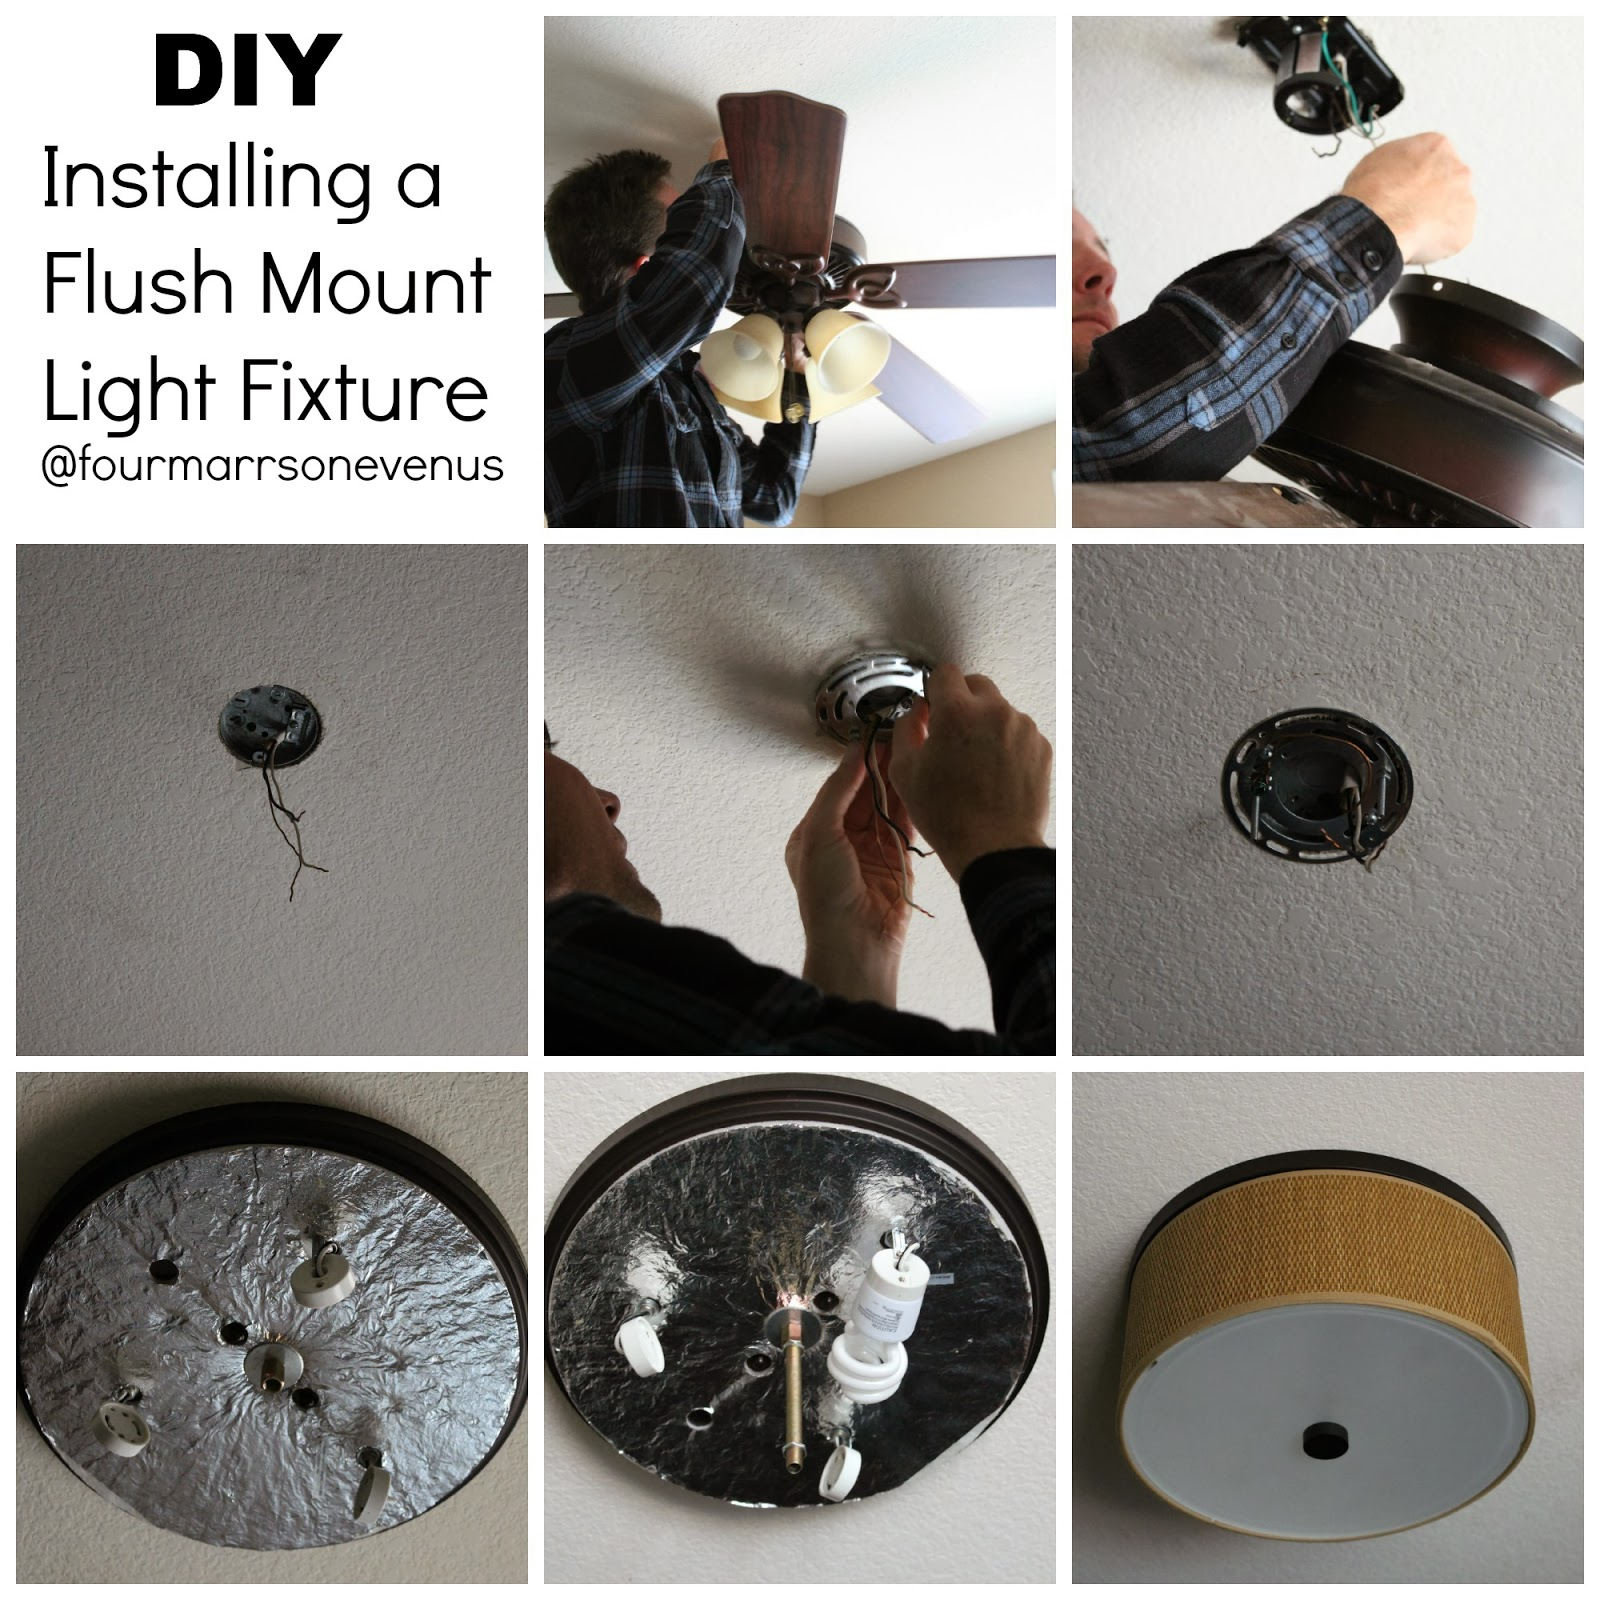 How to install a flush mount light fixture